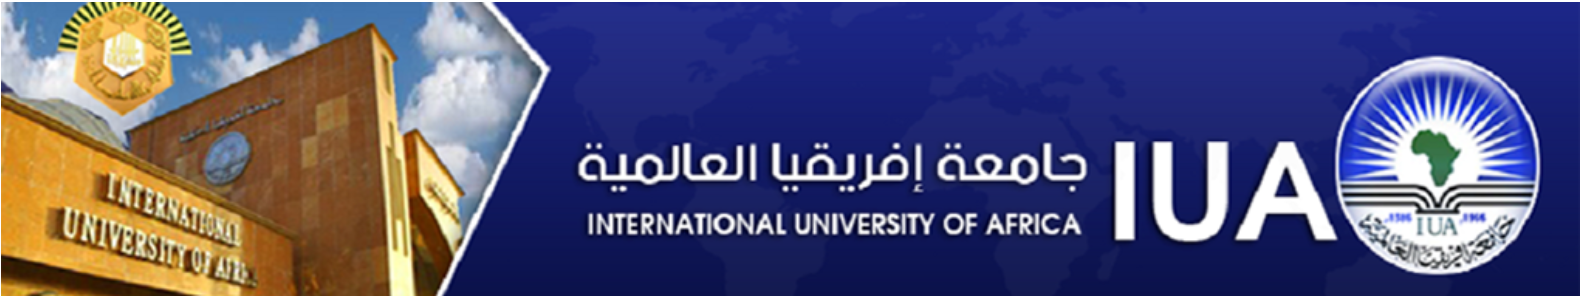 International University of Africa Cover Image